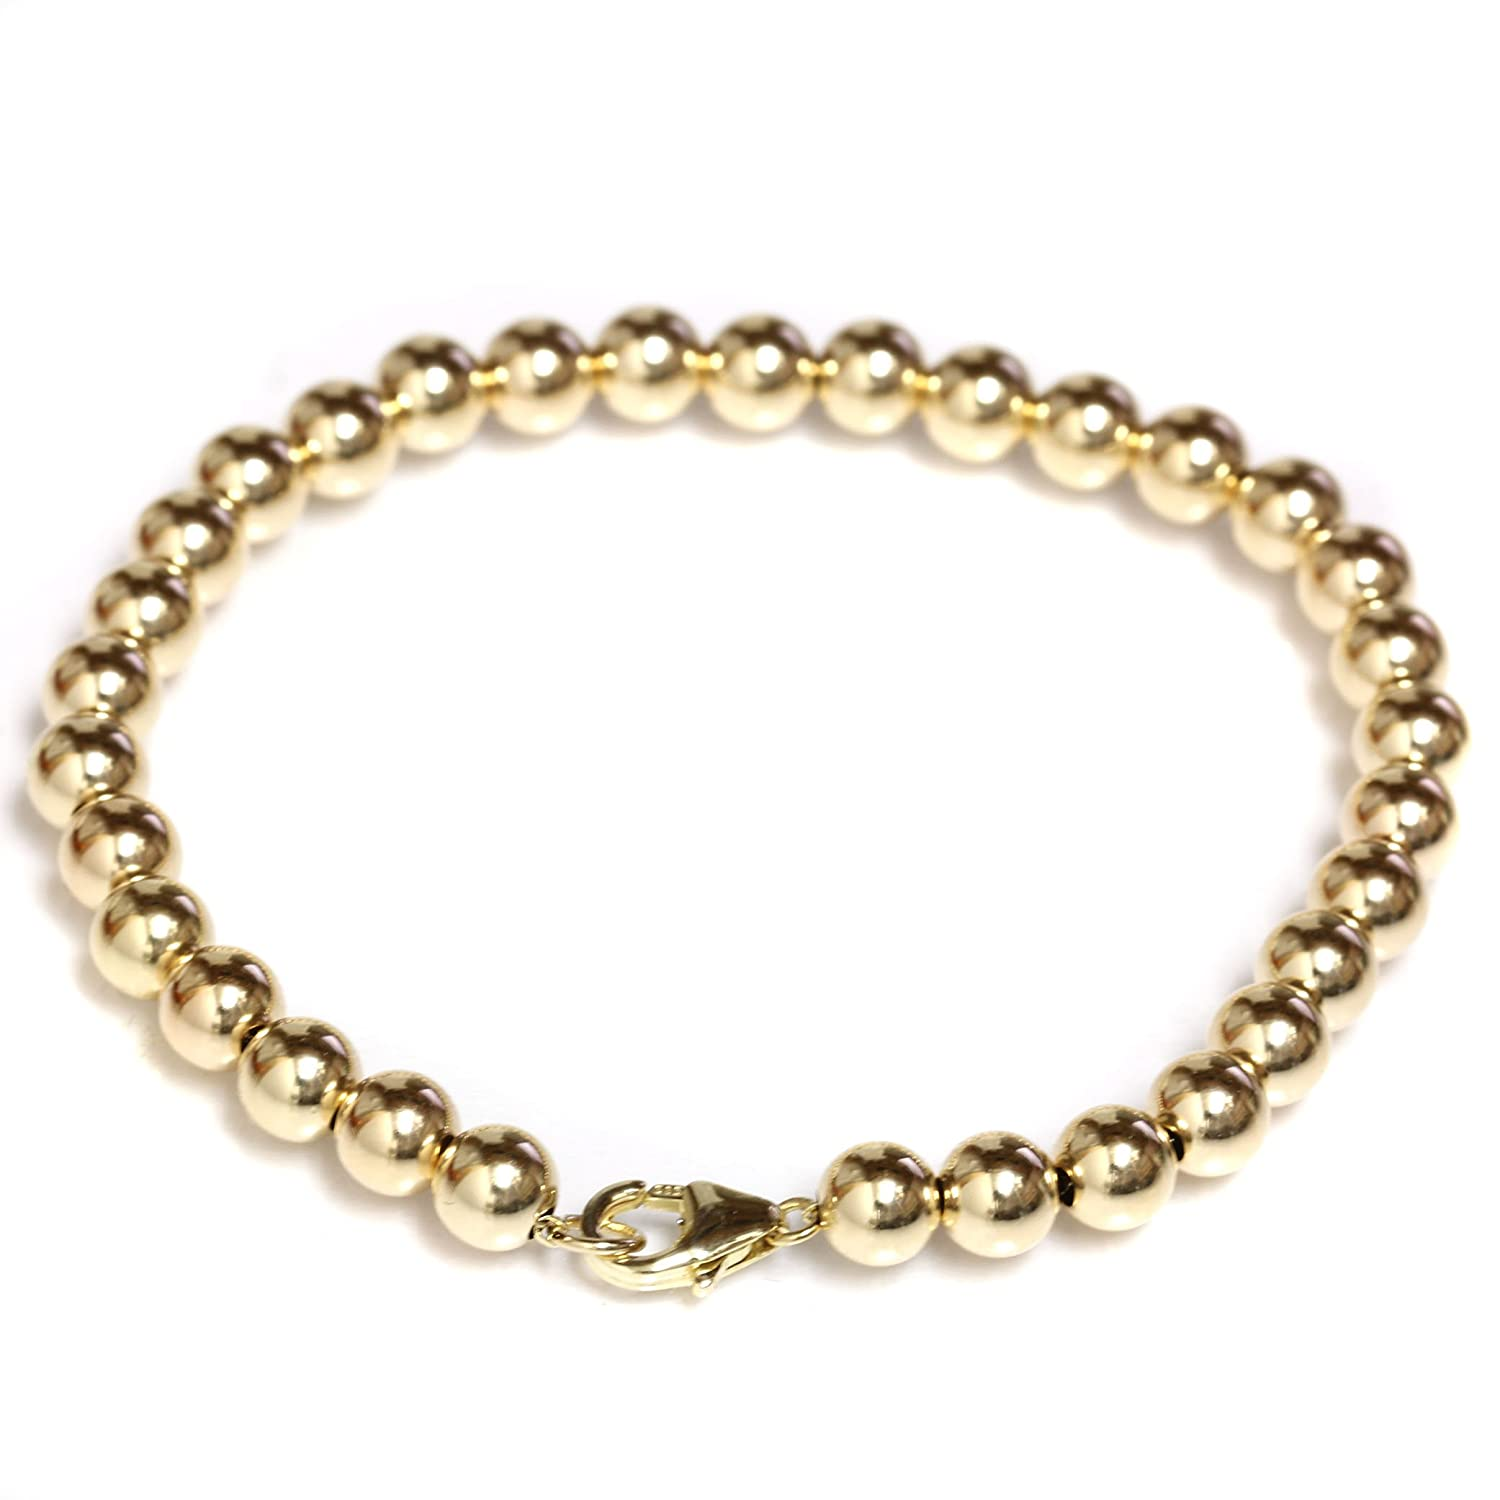 bf8a170c5e0 Amazon.com: Seven Seas Pearls Beaded Bracelet 14k Solid Yellow Gold with  Lobster Clasp 5 mm Beads 6